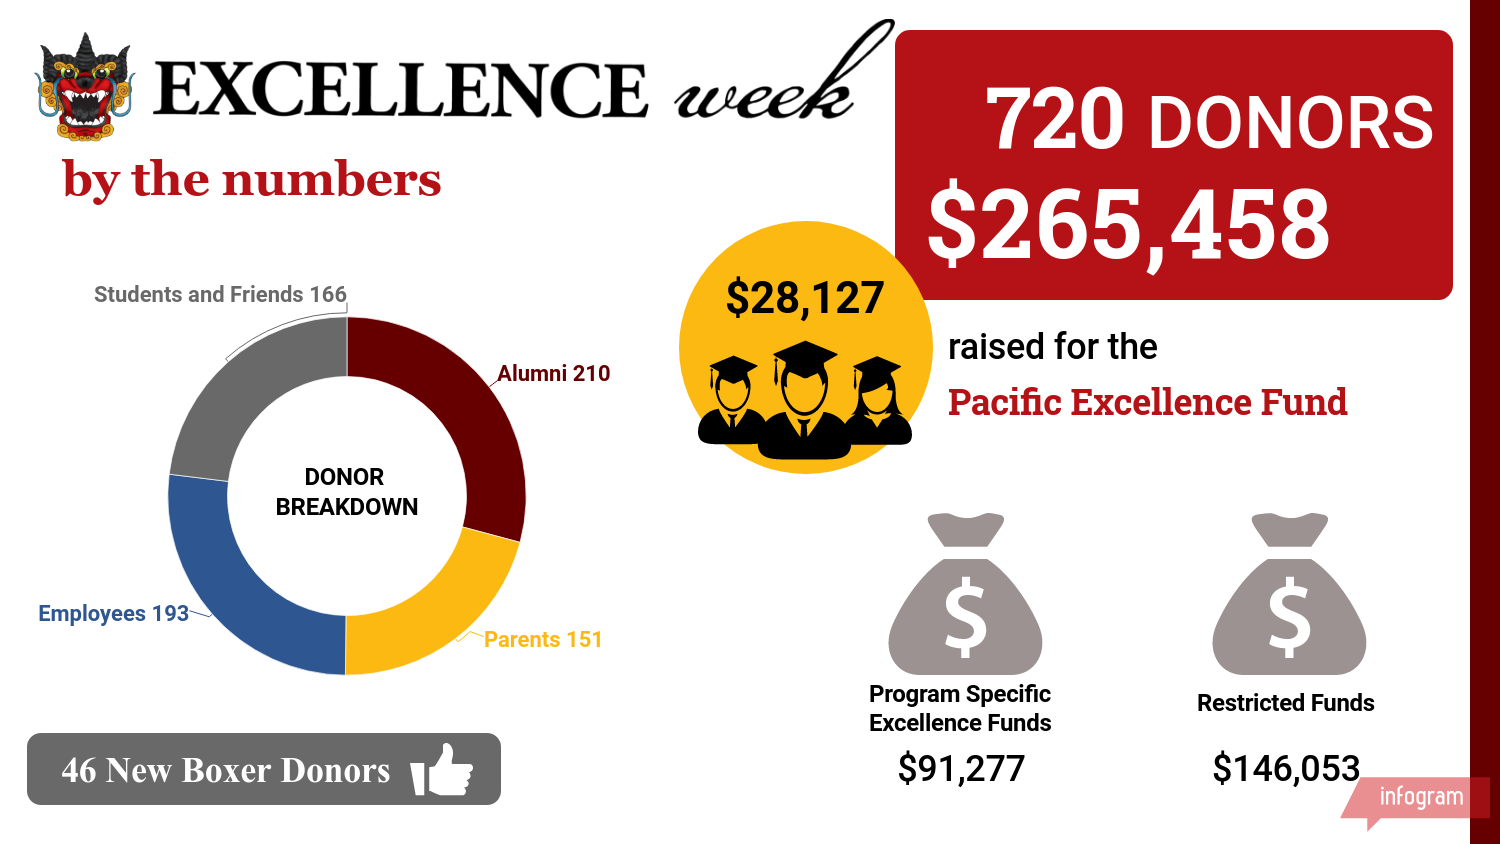 Boxer Excellence Week by the numbers